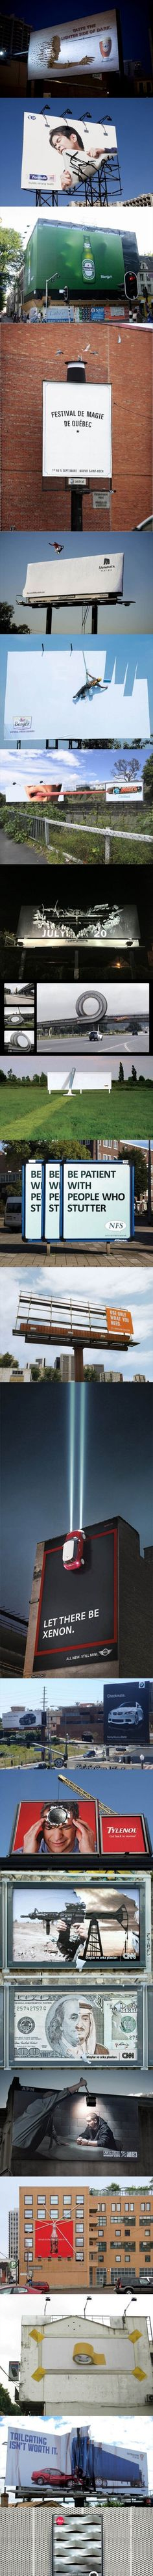 Awesome billboards